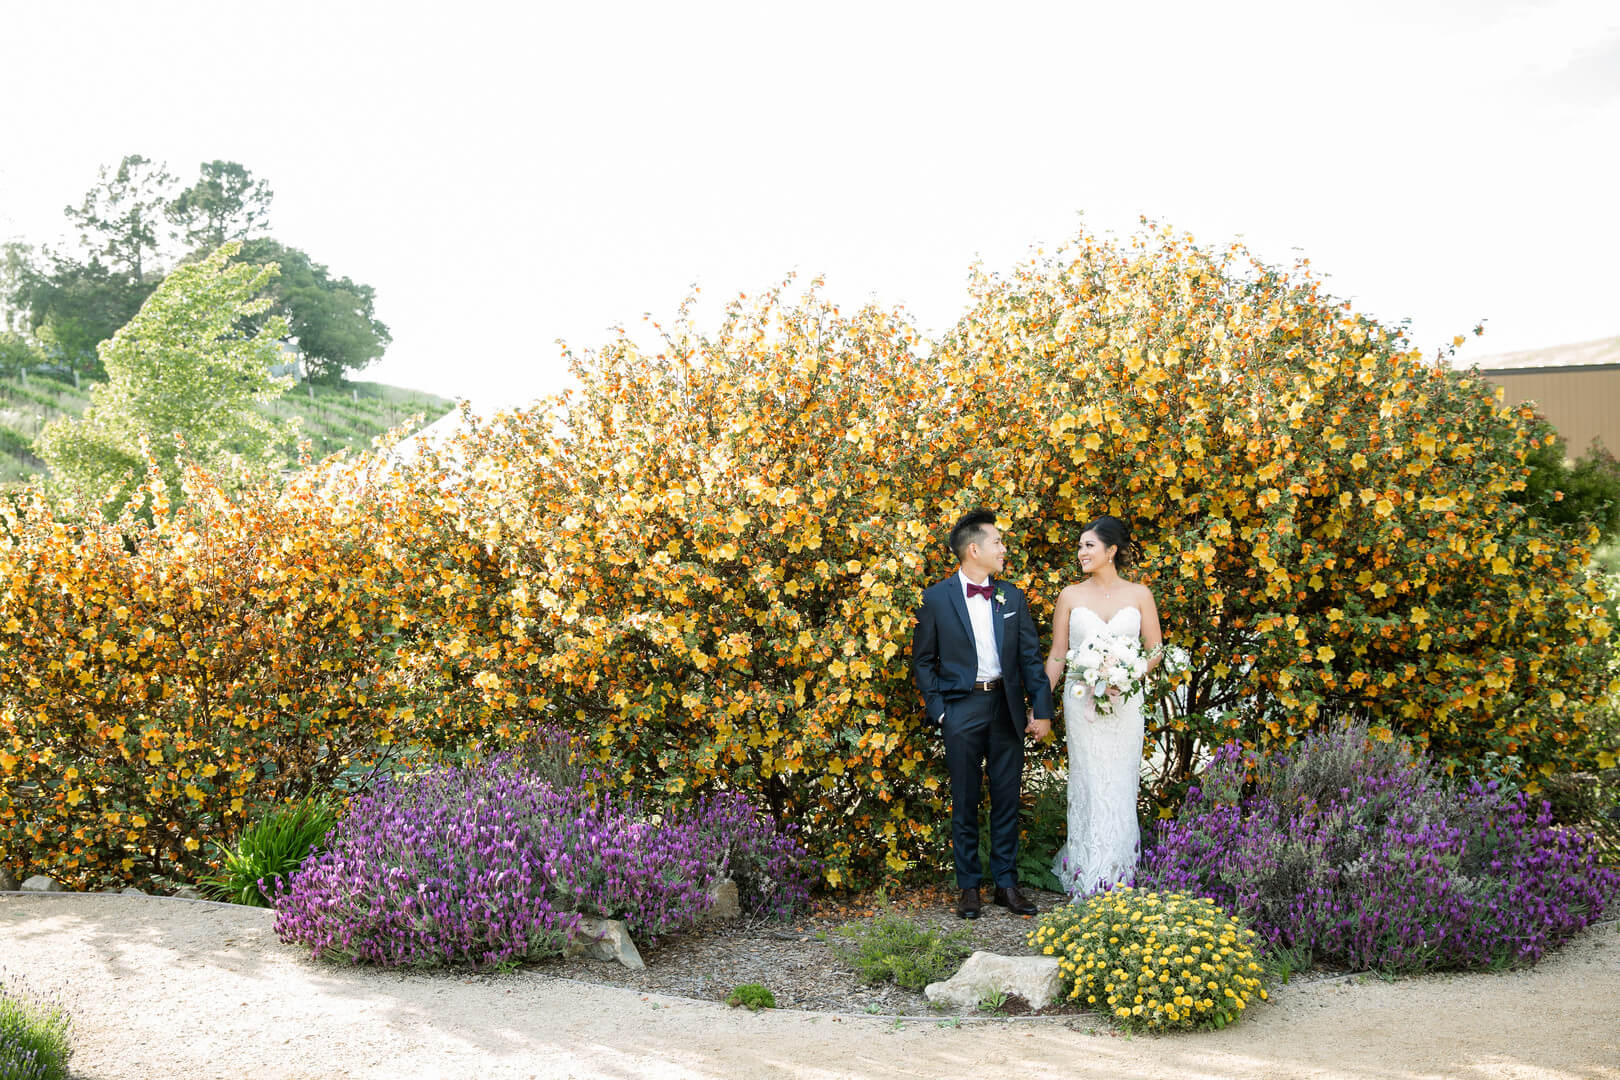 Hellen and Lucas in front of yellow flowers at Nella Terra